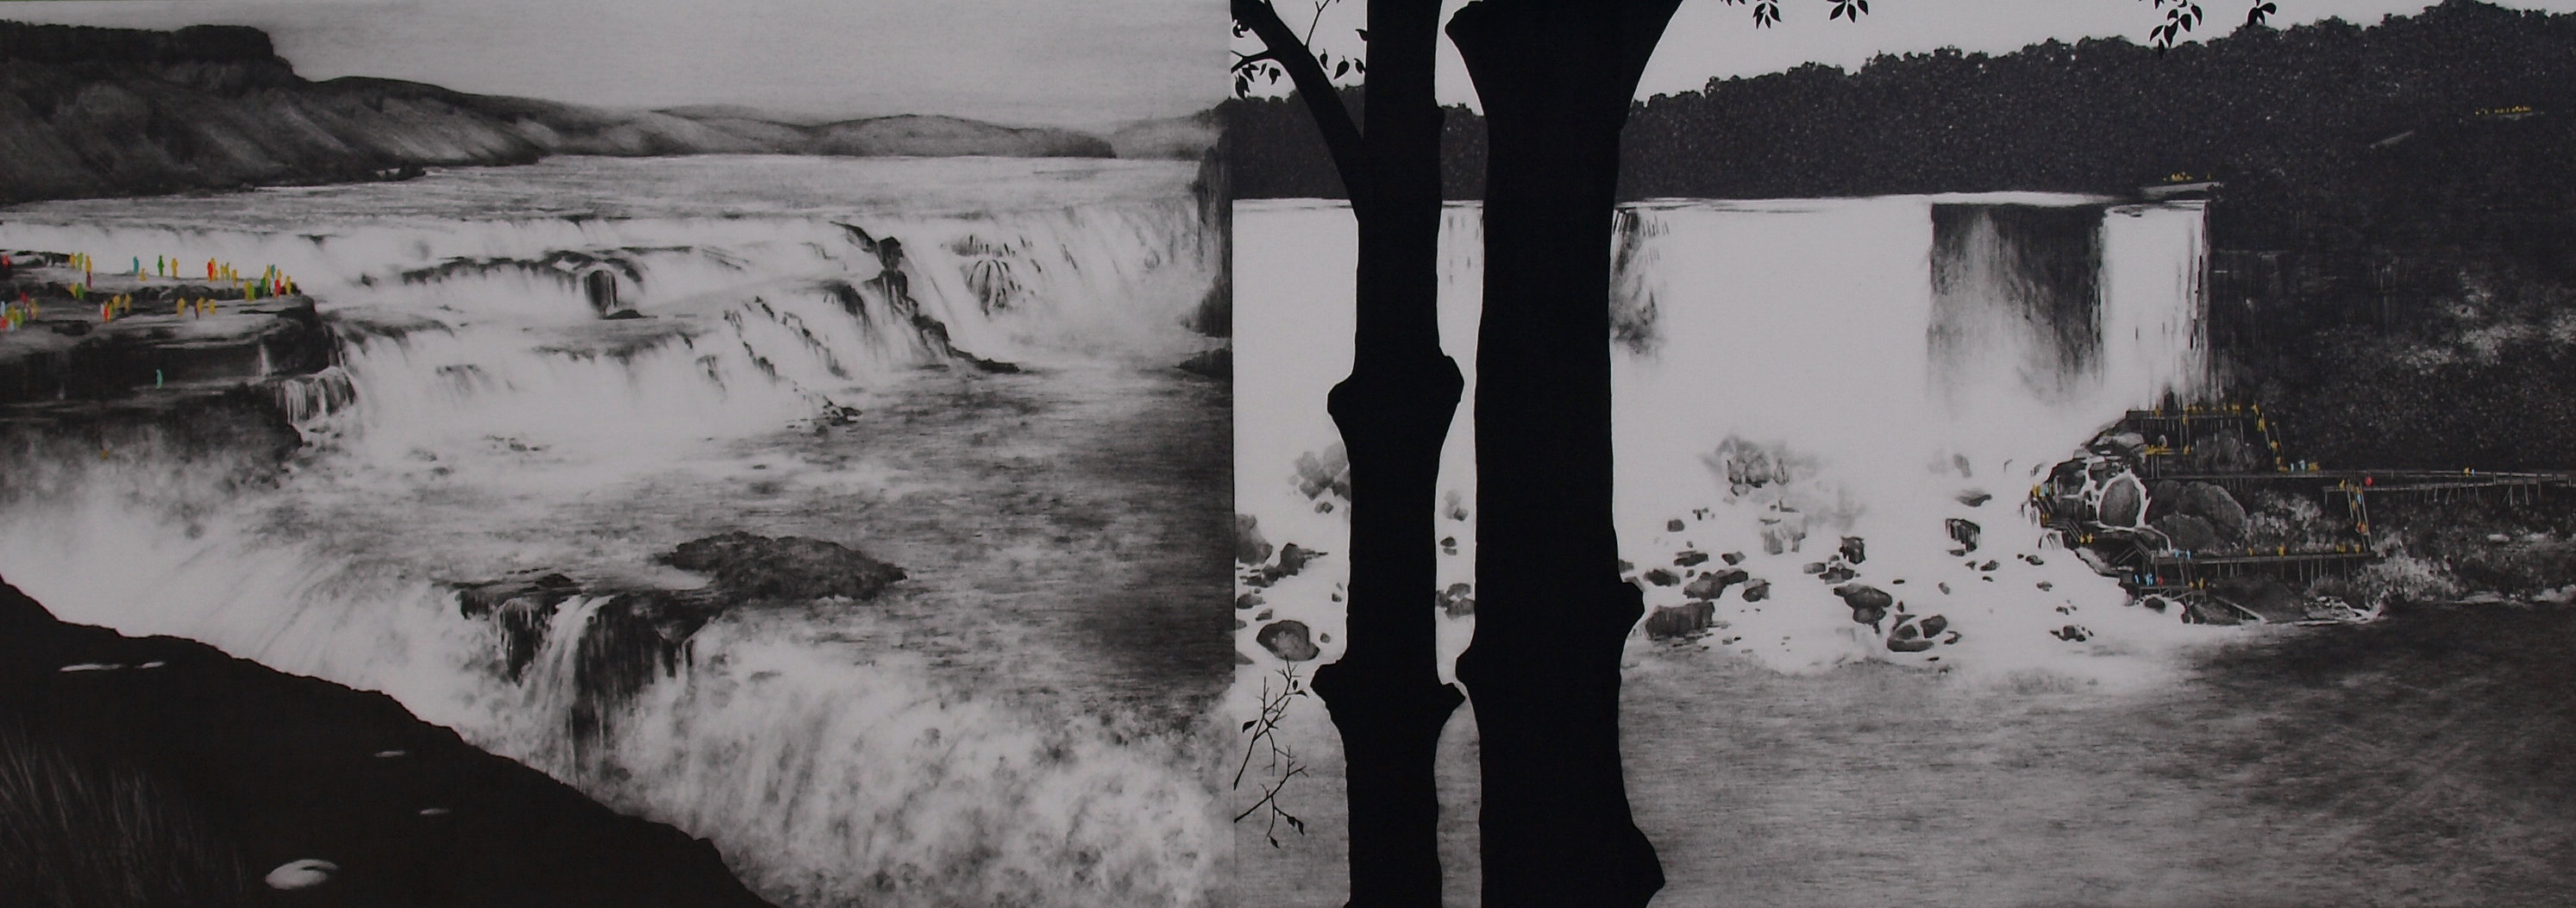 The Falls, 2014, gouache and graphite on paper, 38 x 16""